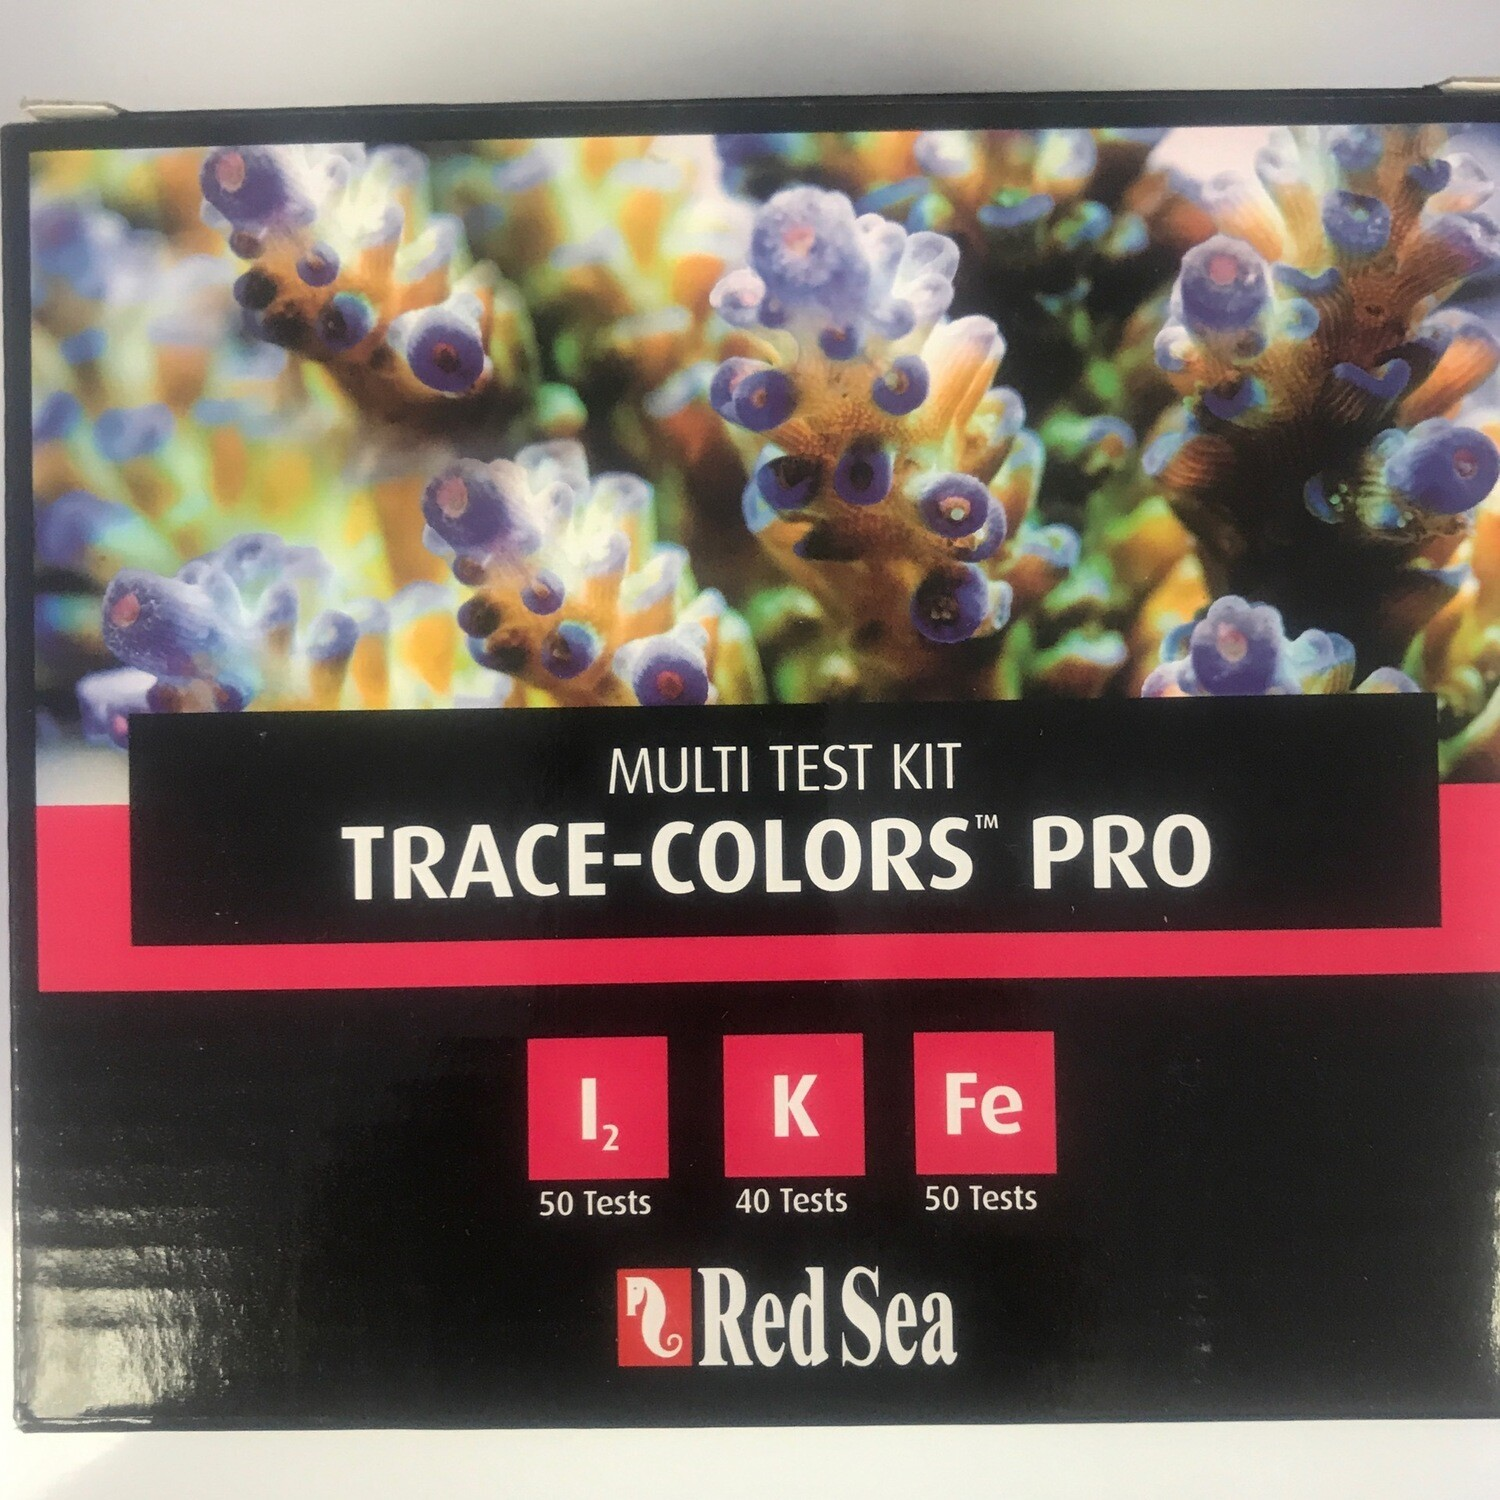 Red Sea Trace-Colors Pro Multi Test Kit